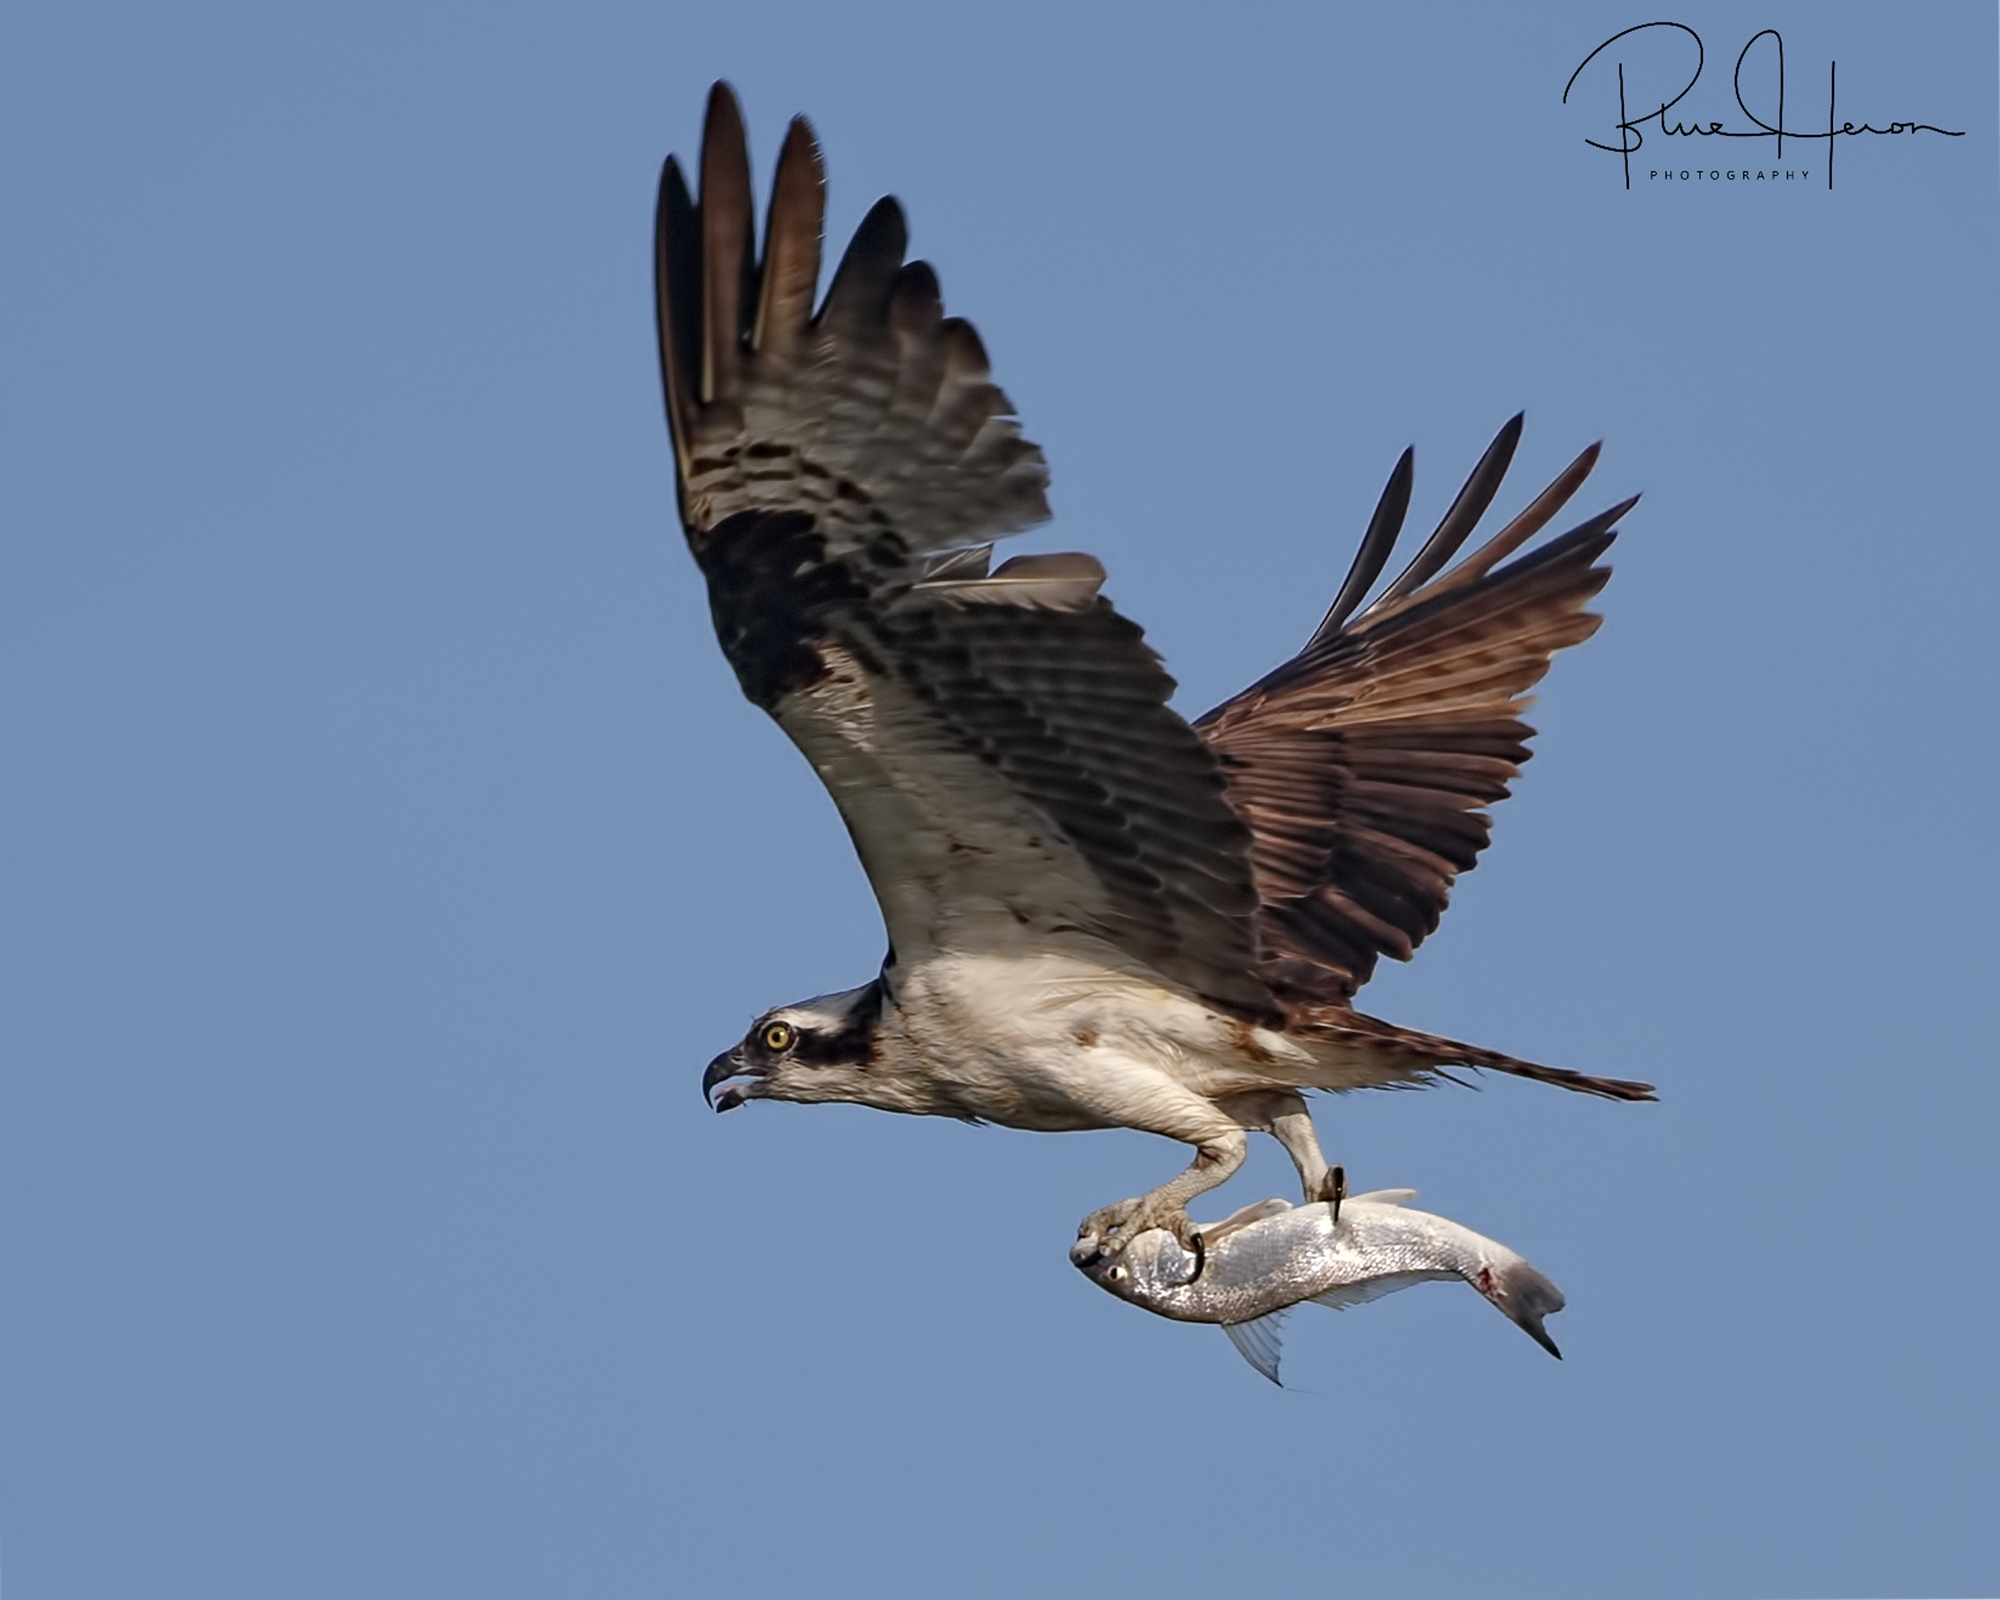 No Gull is going to steal this one from the Osprey!